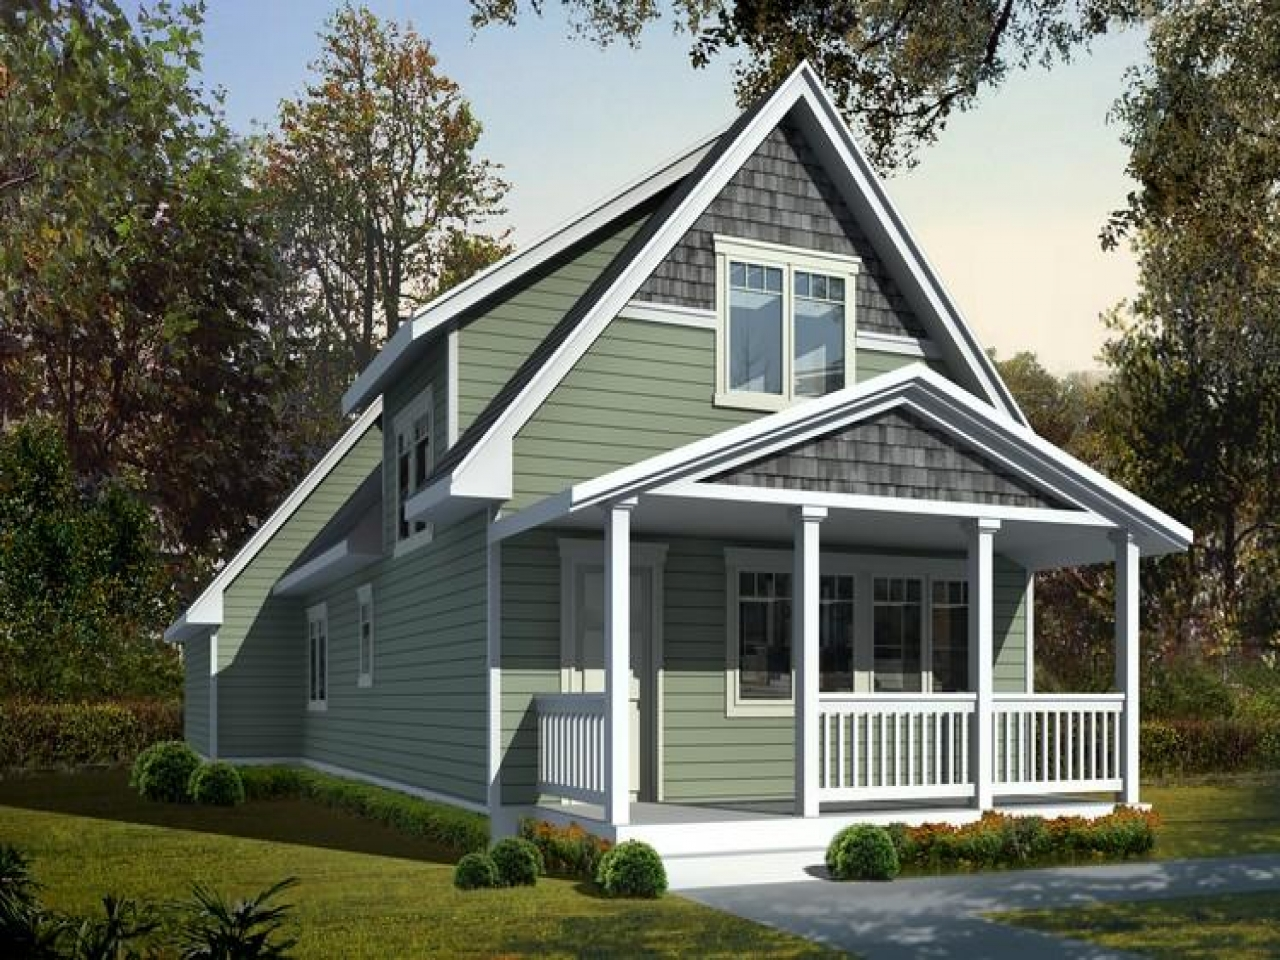 floor plans for small cottages english cottage house floor plans small country cottage house plans plans for small cottages 5990